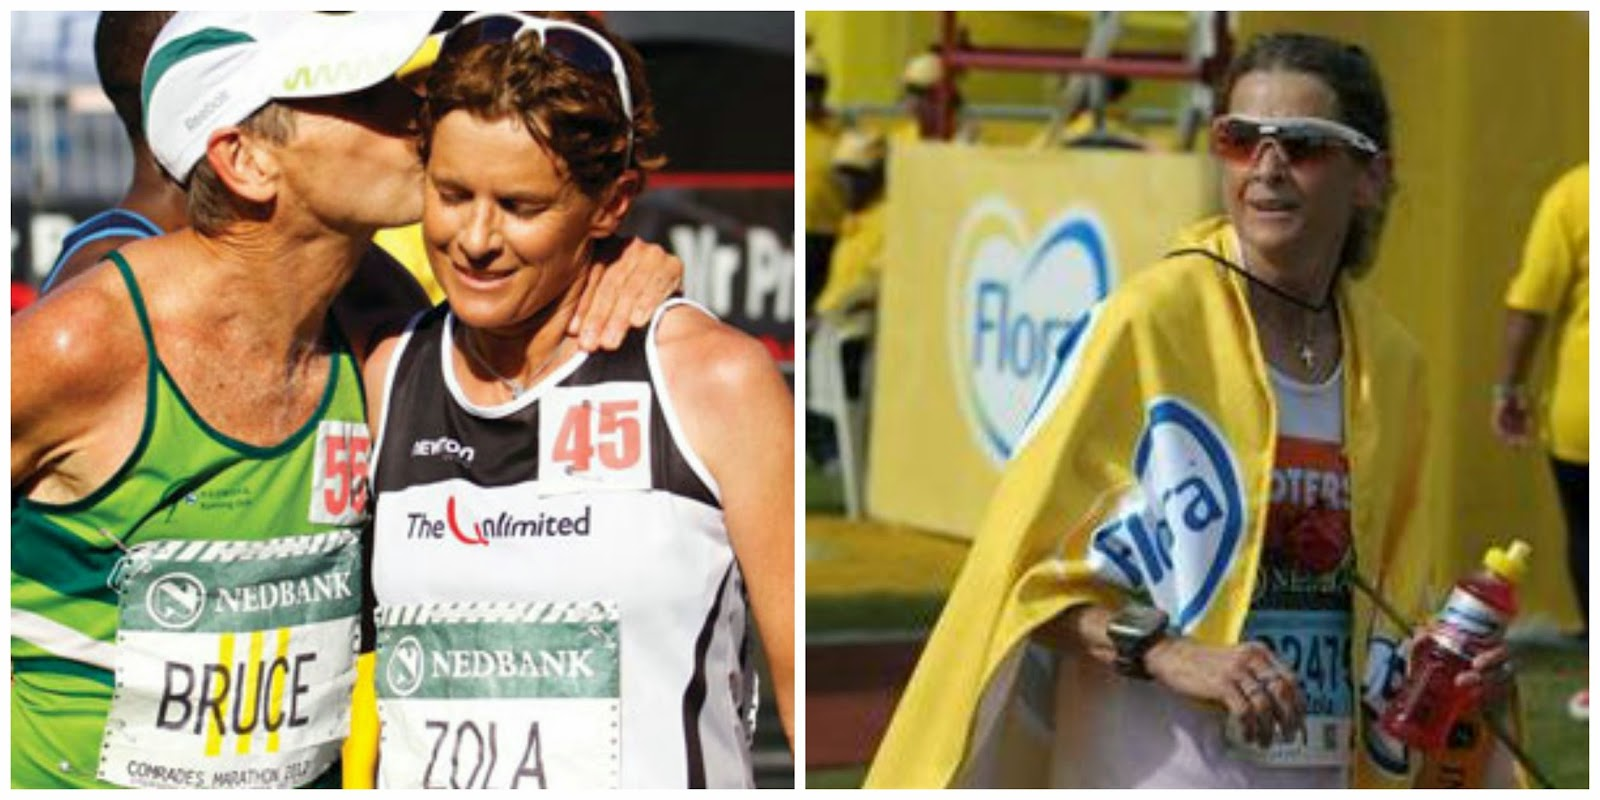 Zola Budd finishing Comrades 2012 and 2014